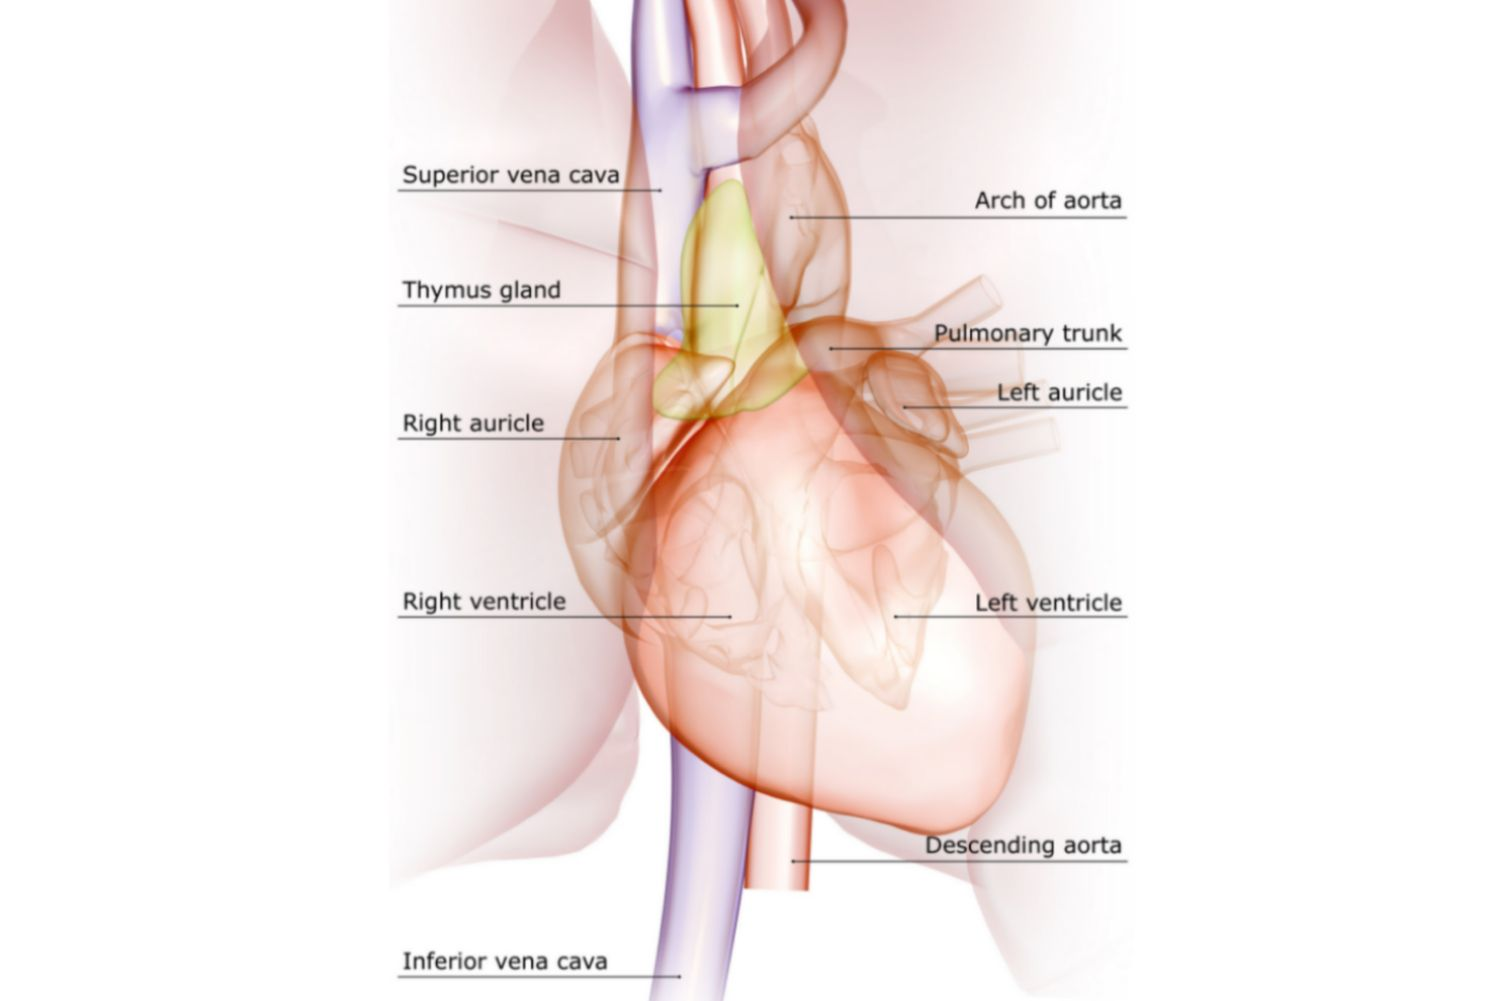 Major veins and arteries of the heart labeled on a diagram.